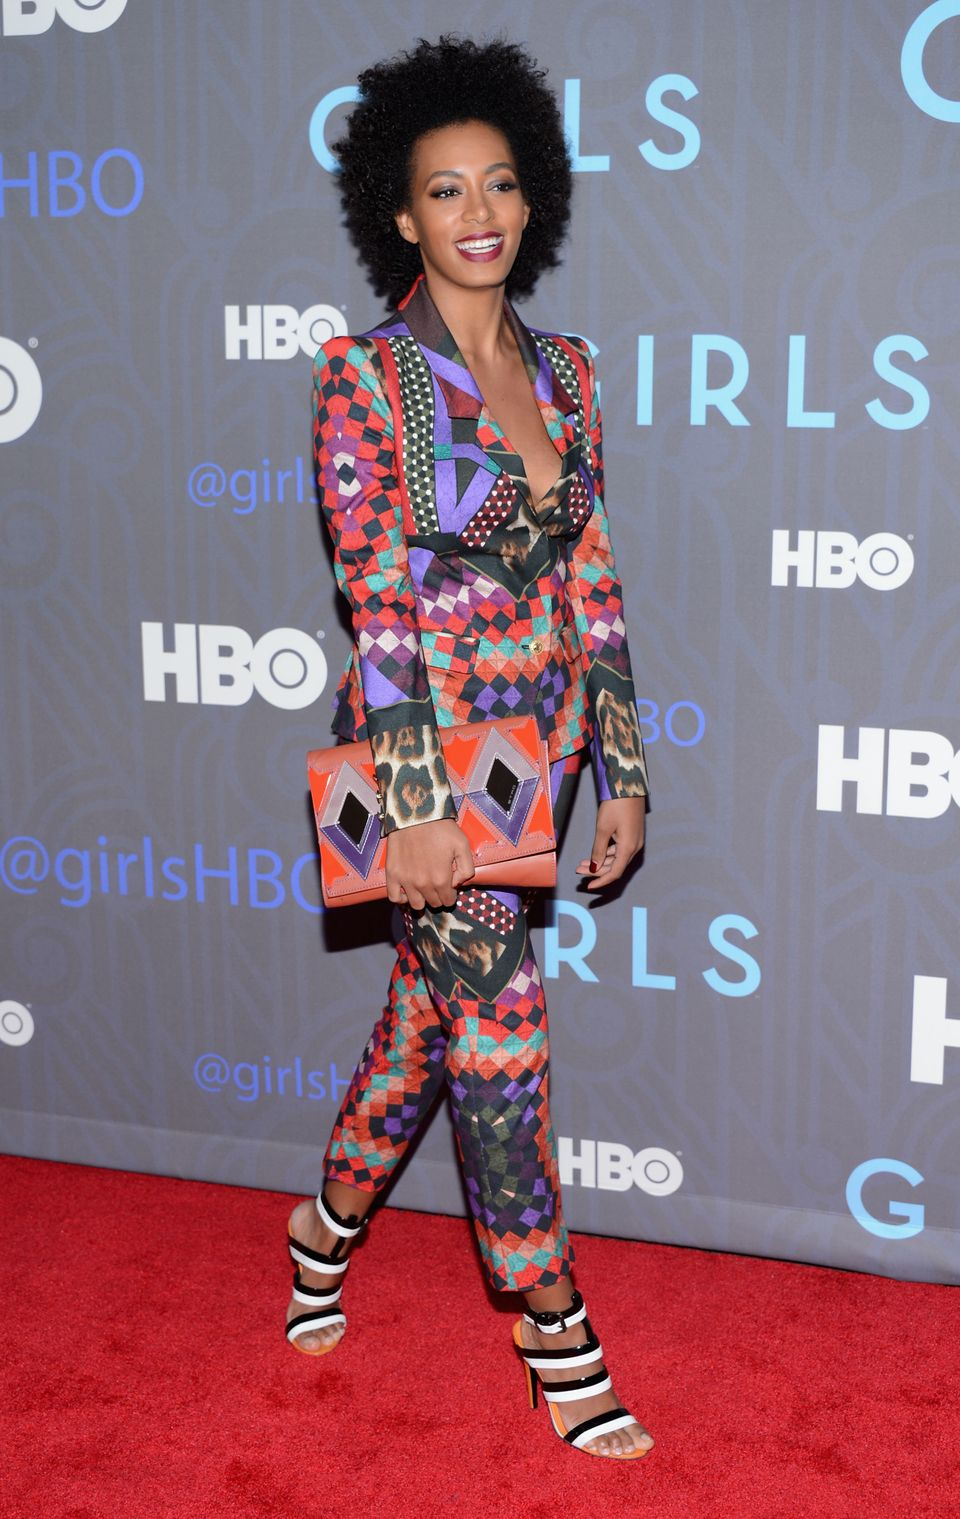 NEW YORK, NY - JANUARY 09:  Solange Knowles attends the Premiere Of 'Girls' Season 2 Hosted By HBO at NYU Skirball Center on